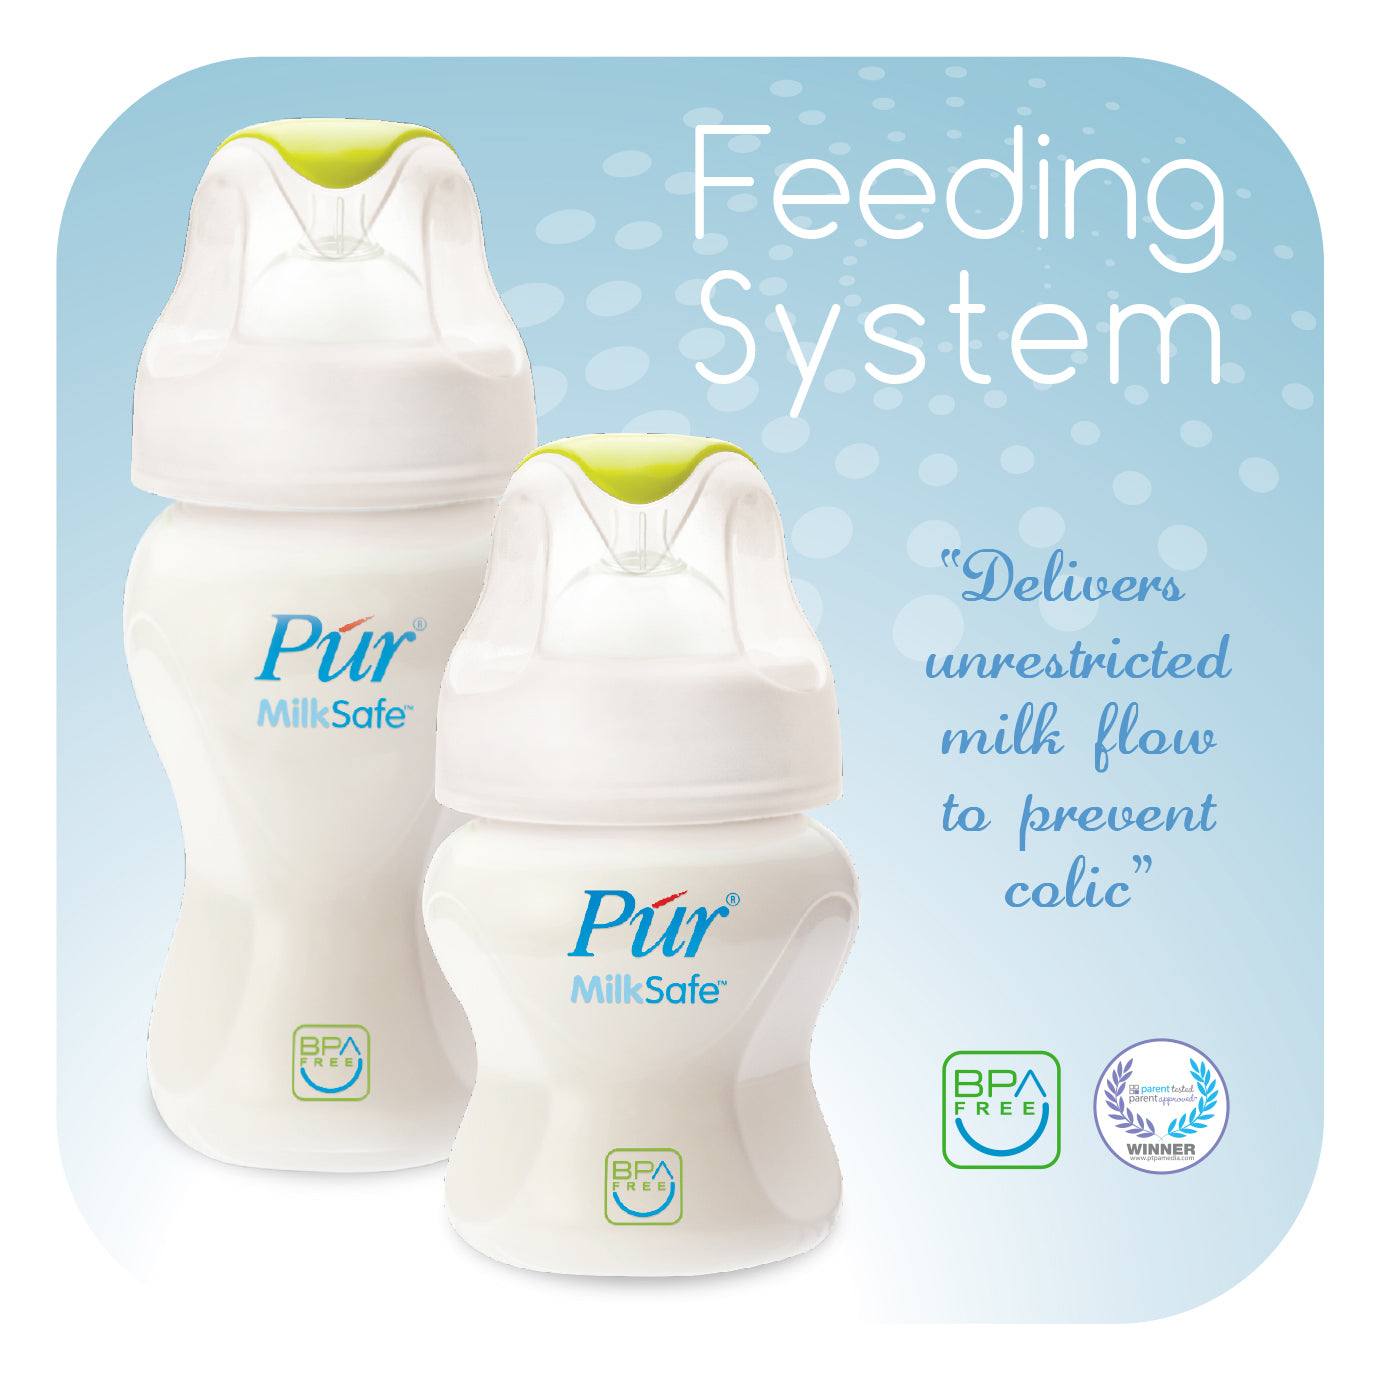 Púr MilkSafe Feeding Milk Bottle (8 oz./250 ml) - 2 Bottles Value Pack